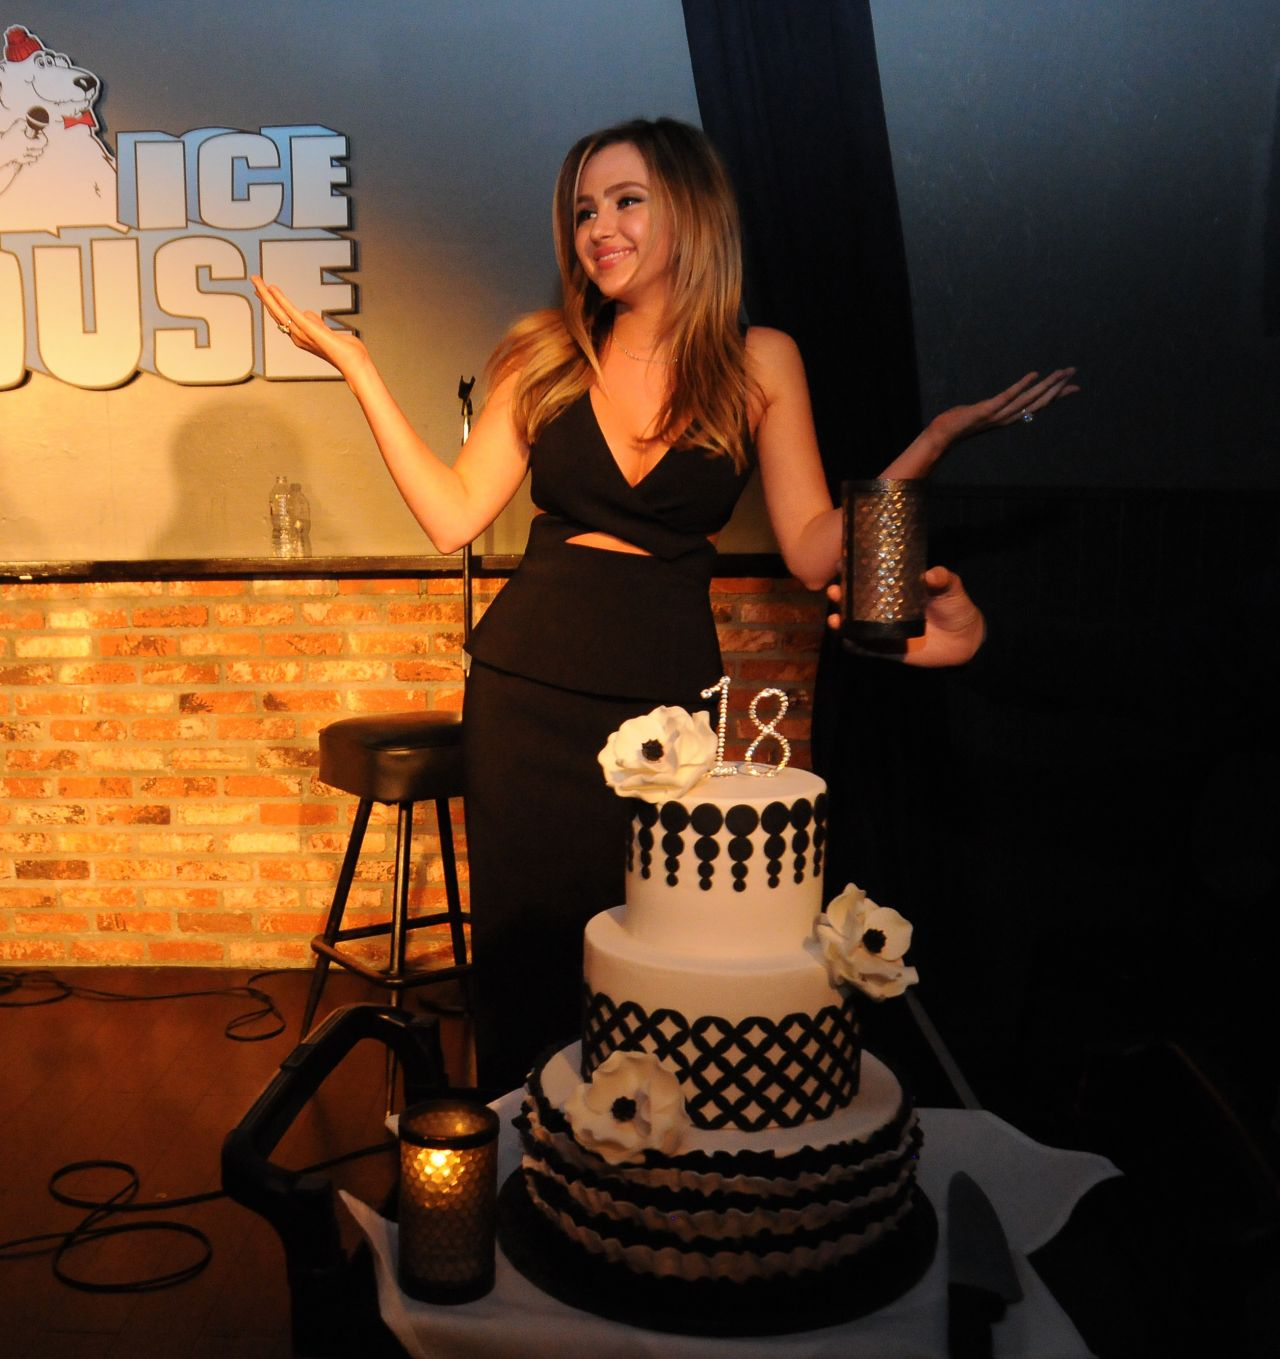 18th Birthday At The Ice House Comedy Club